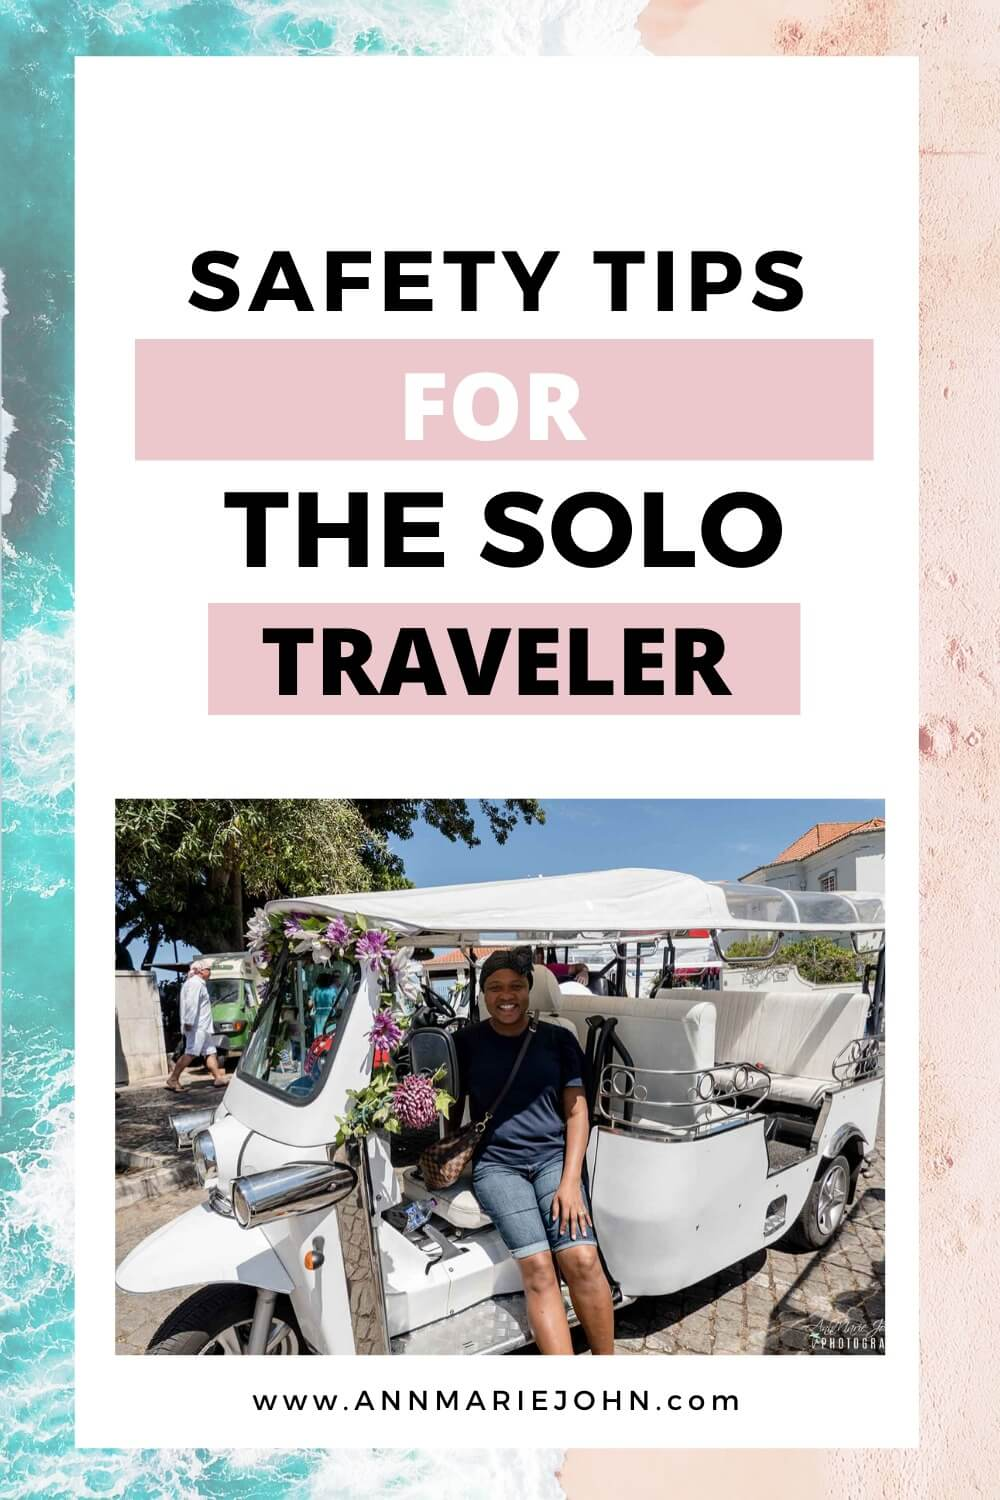 Safety Tips for the Solo Traveler